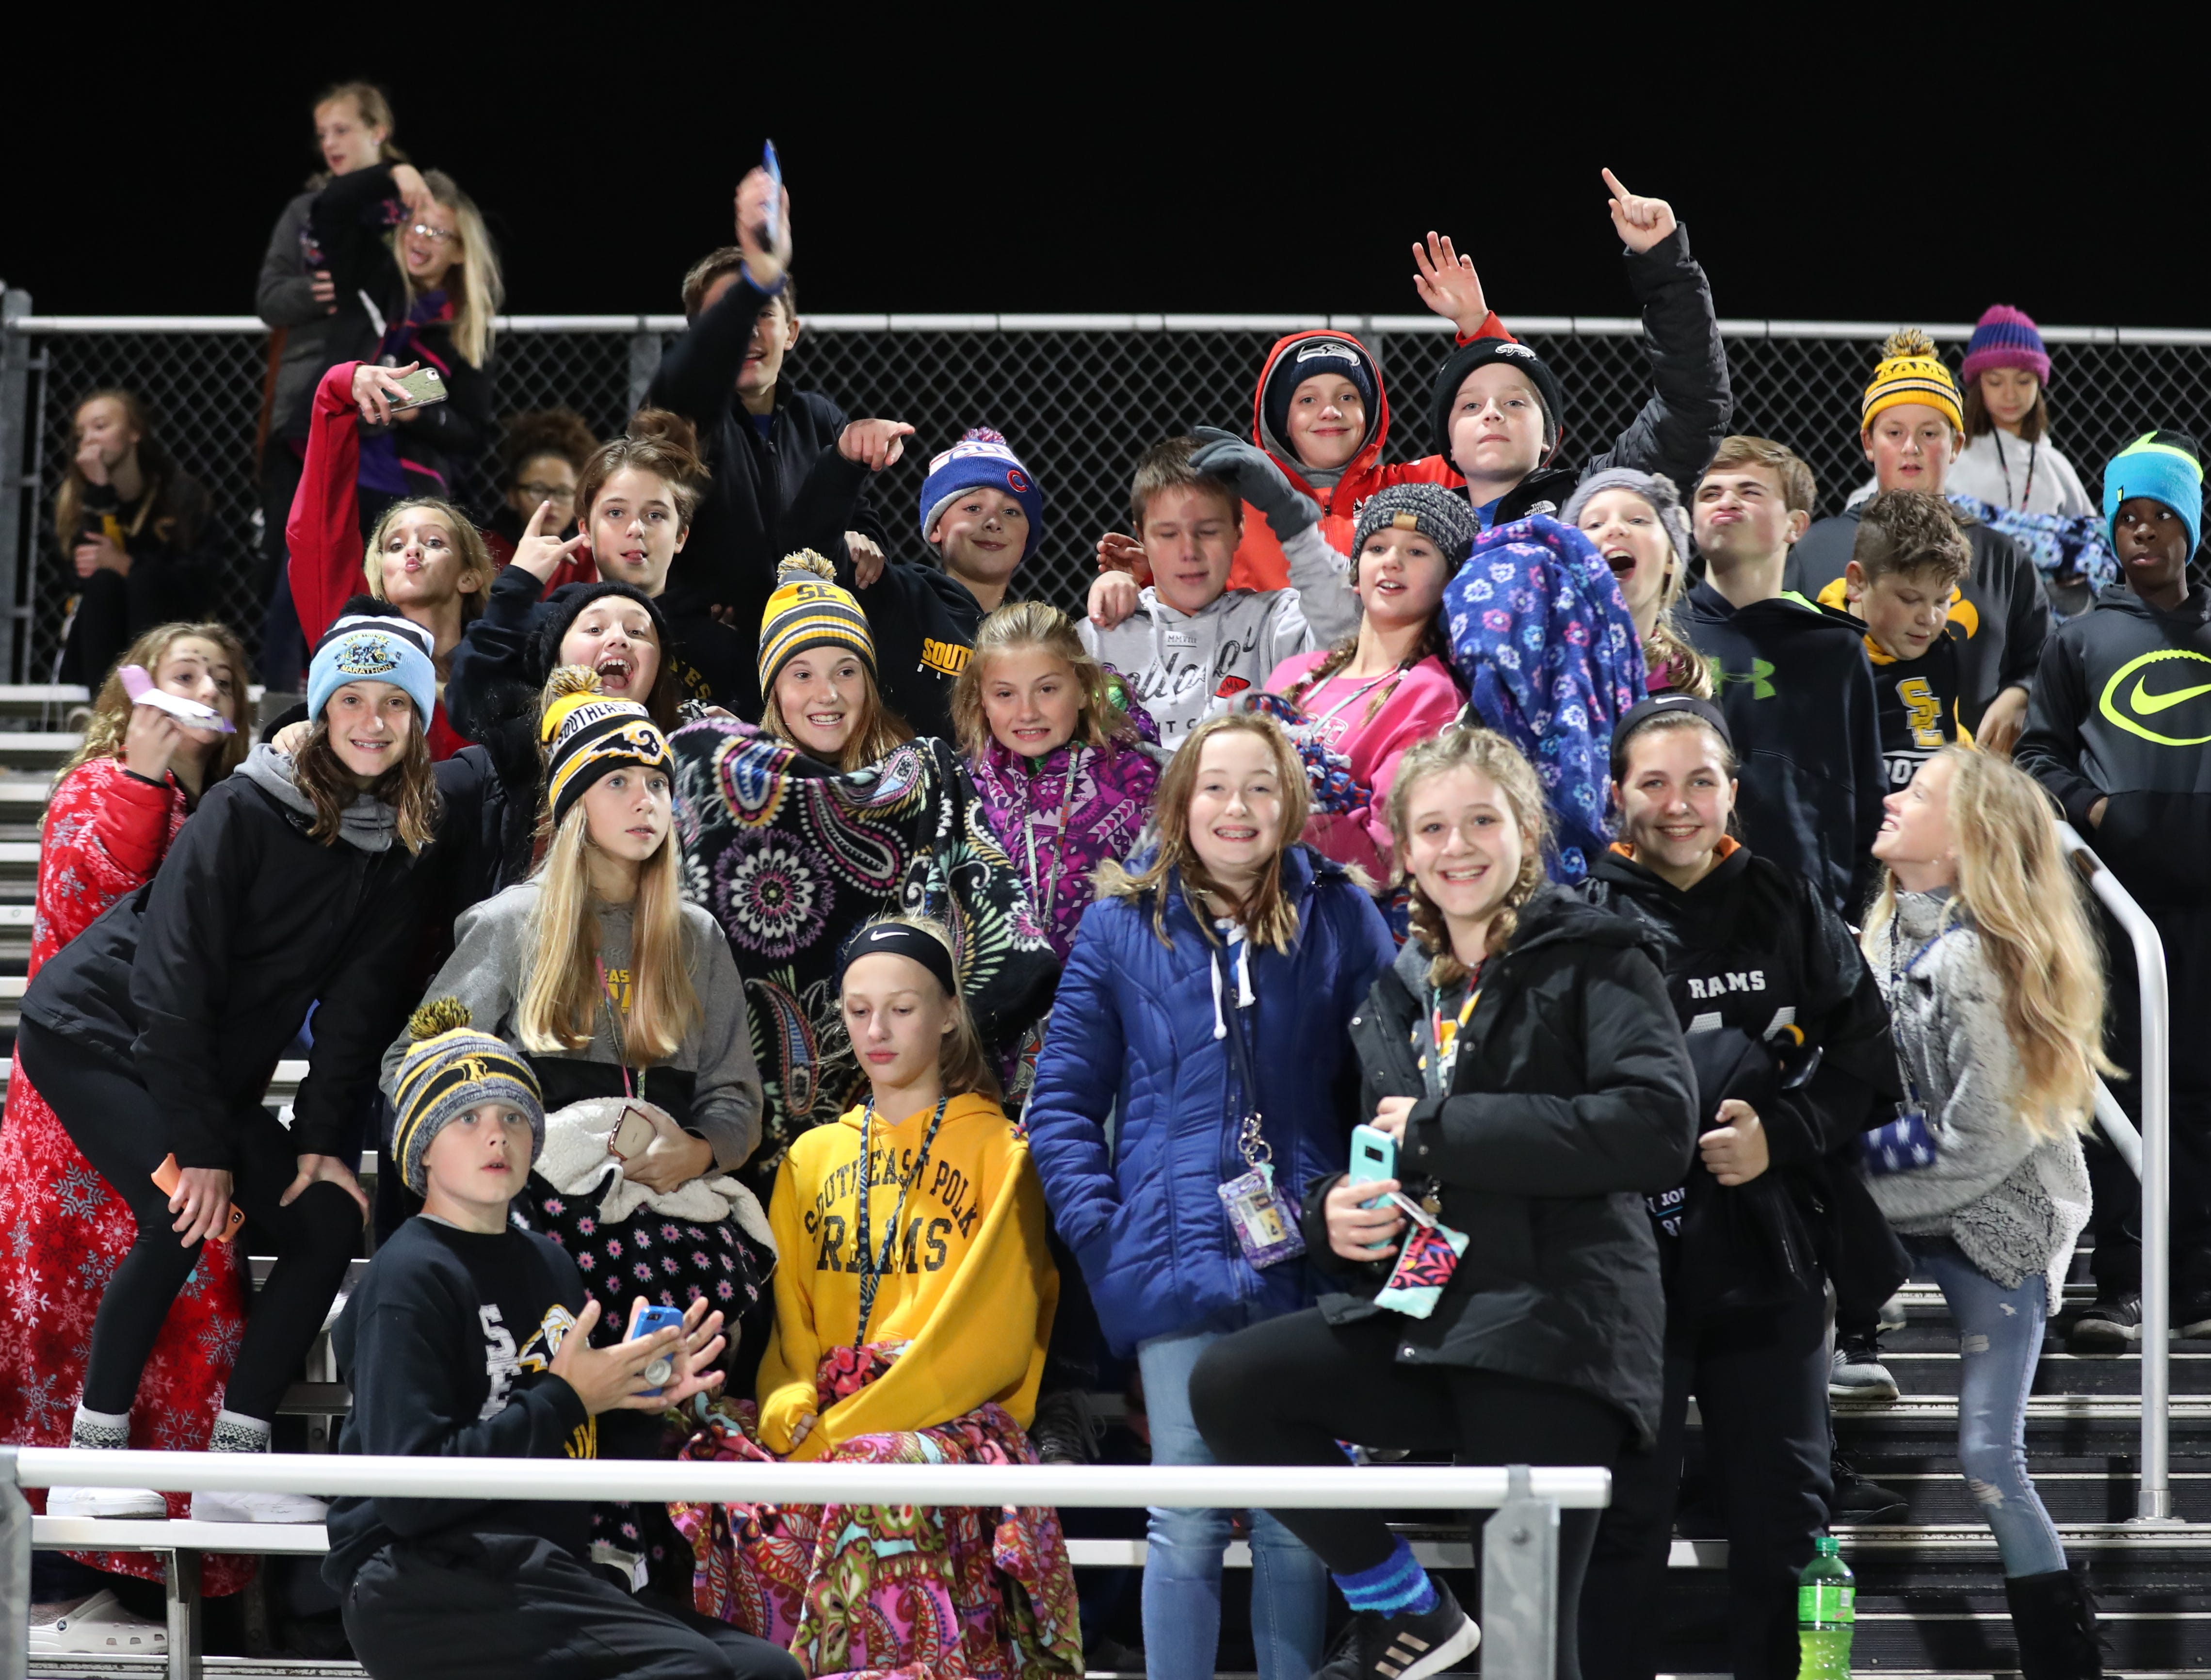 Southeast Polk Rams Jr. High students having a good time at their football game against the Marshalltown Bobcats at SE Polk Stadium. The Rams beat the Bobcats 56 to 7.